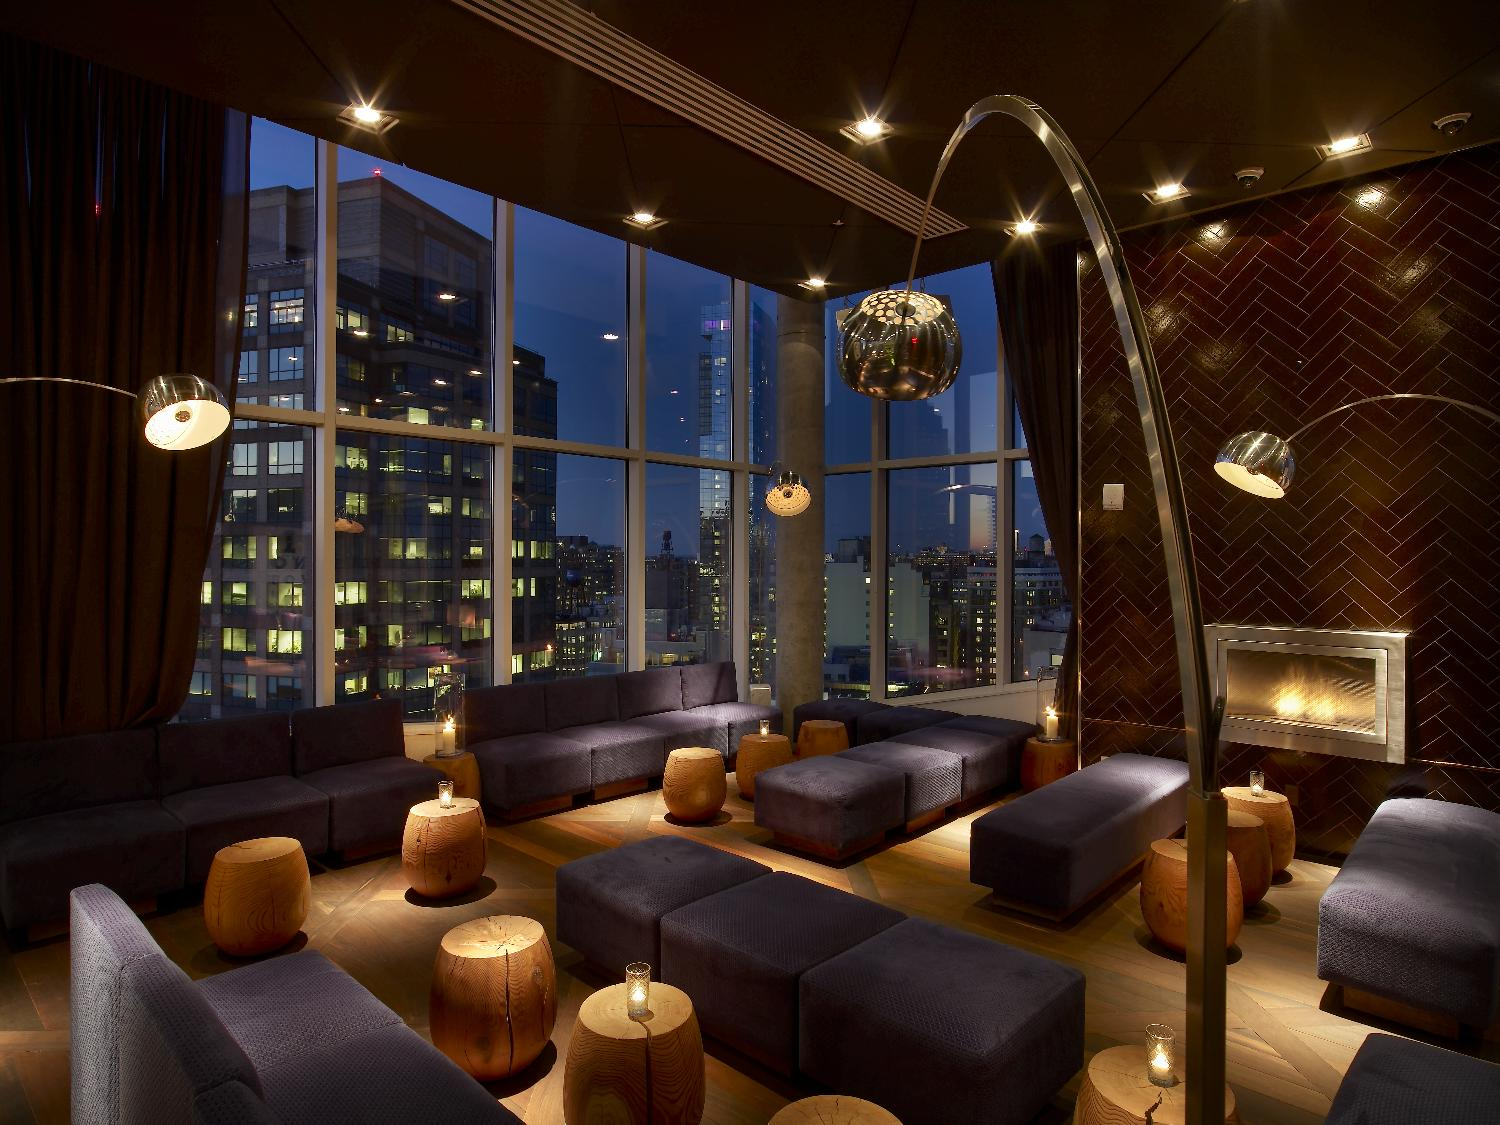 The best hotel bars in new york city for Hippest hotels in nyc